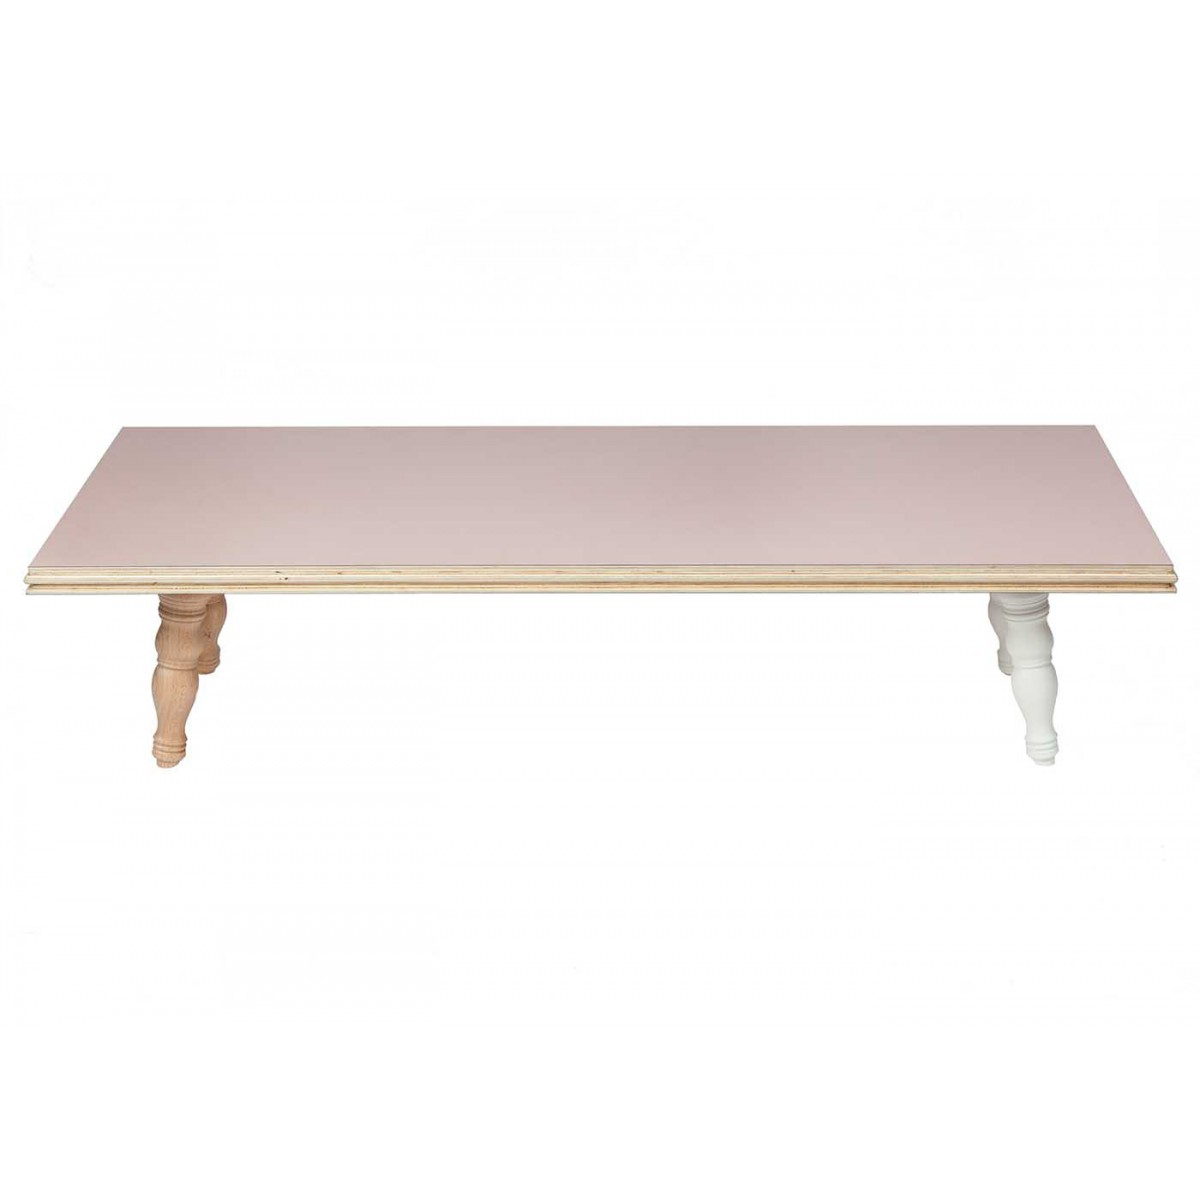 Table De Salon Bois Clair Table Basse En Bois Clair Design Scandinave Flower Par Blomkal